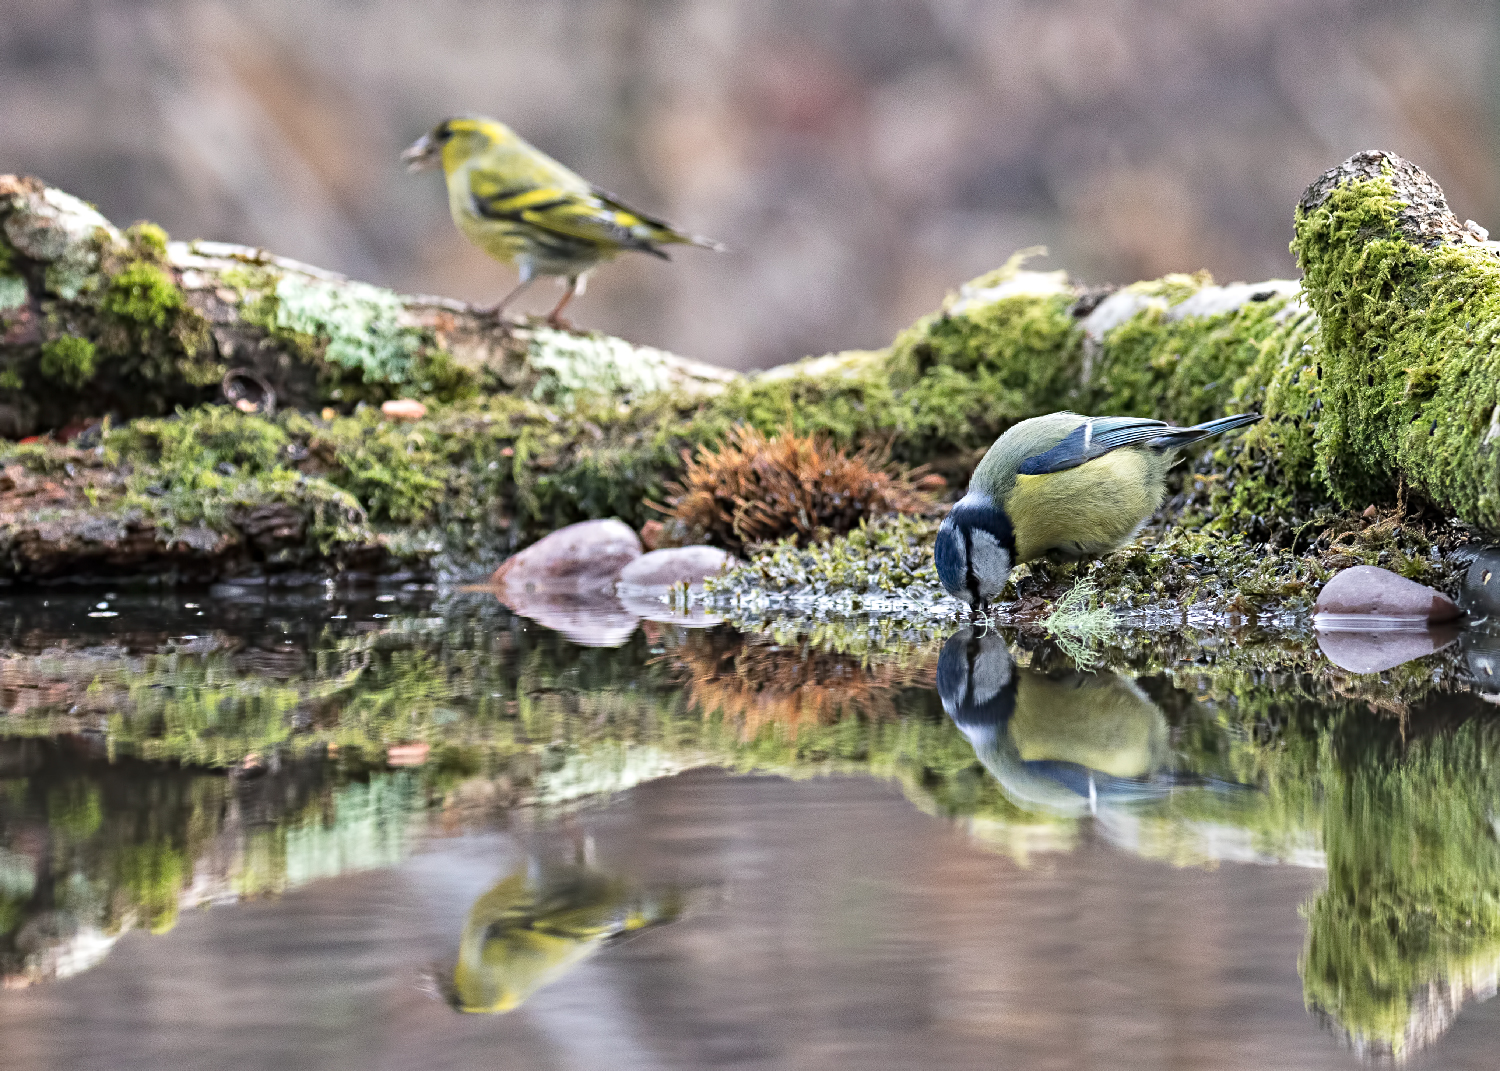 Blue Tit with Siskin behind